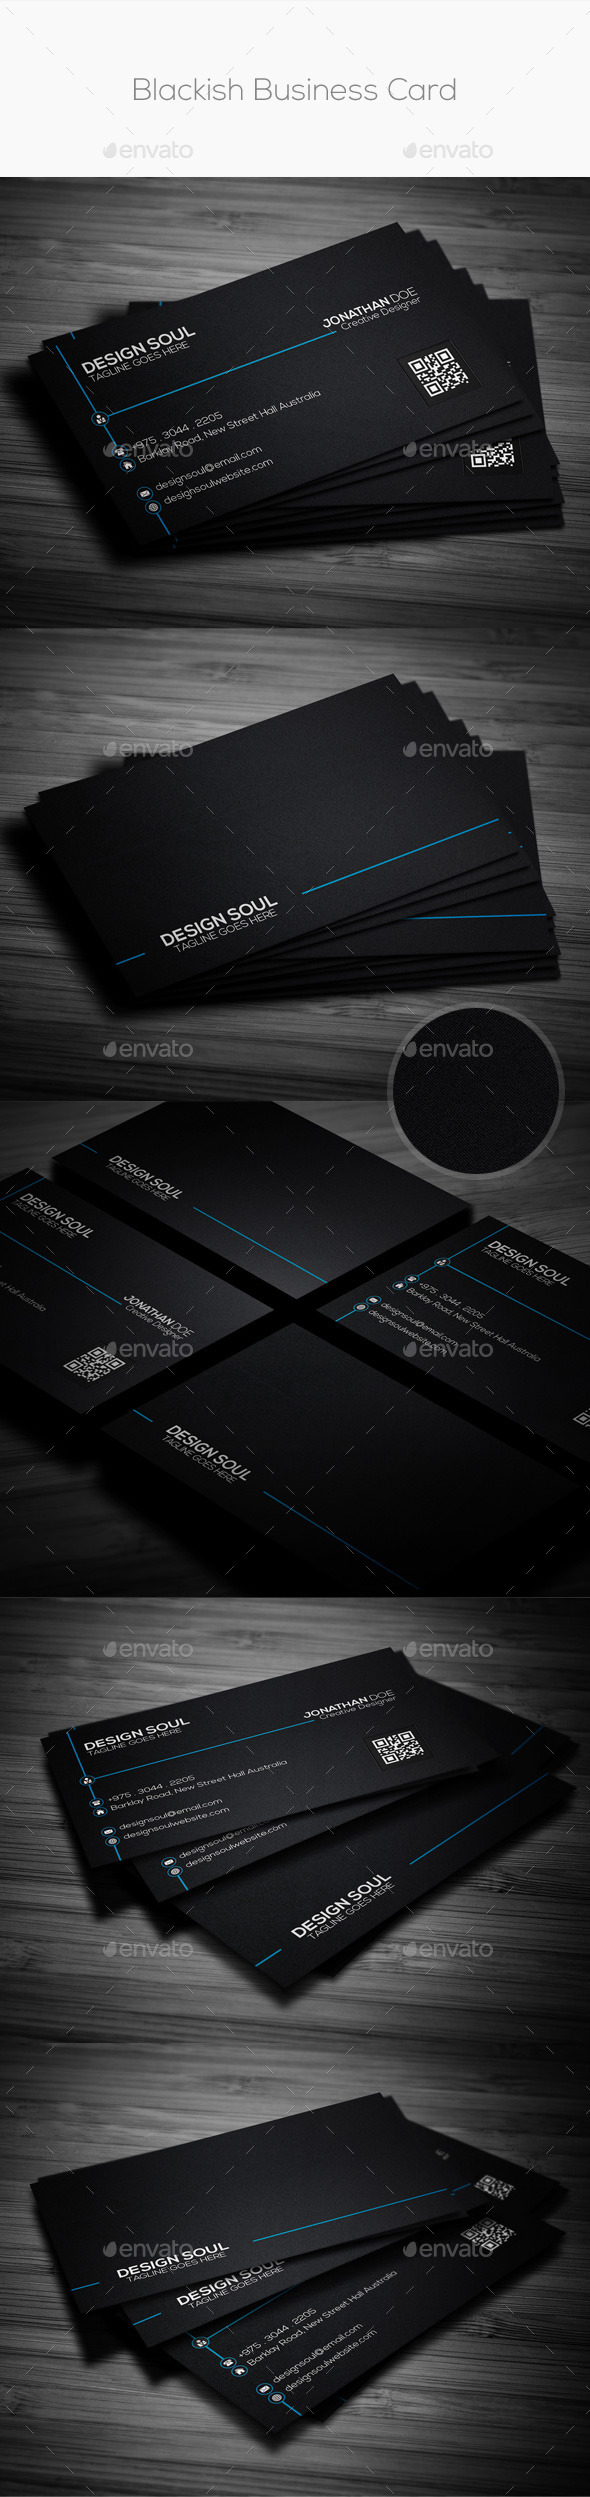 GraphicRiver Blackish Business Card 9218454